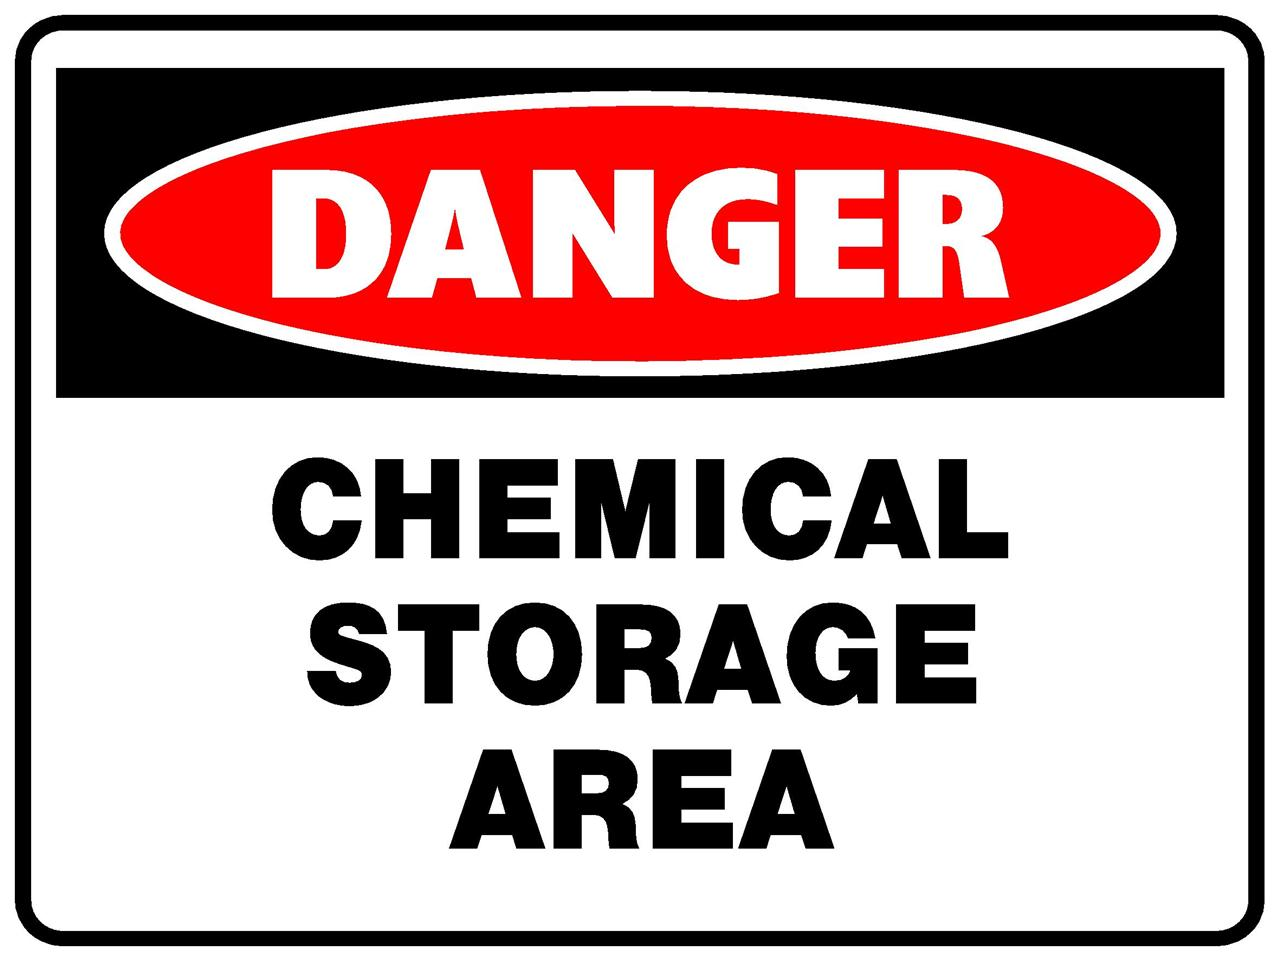 Danger Chemical Storage Area 1 4mil Plastic